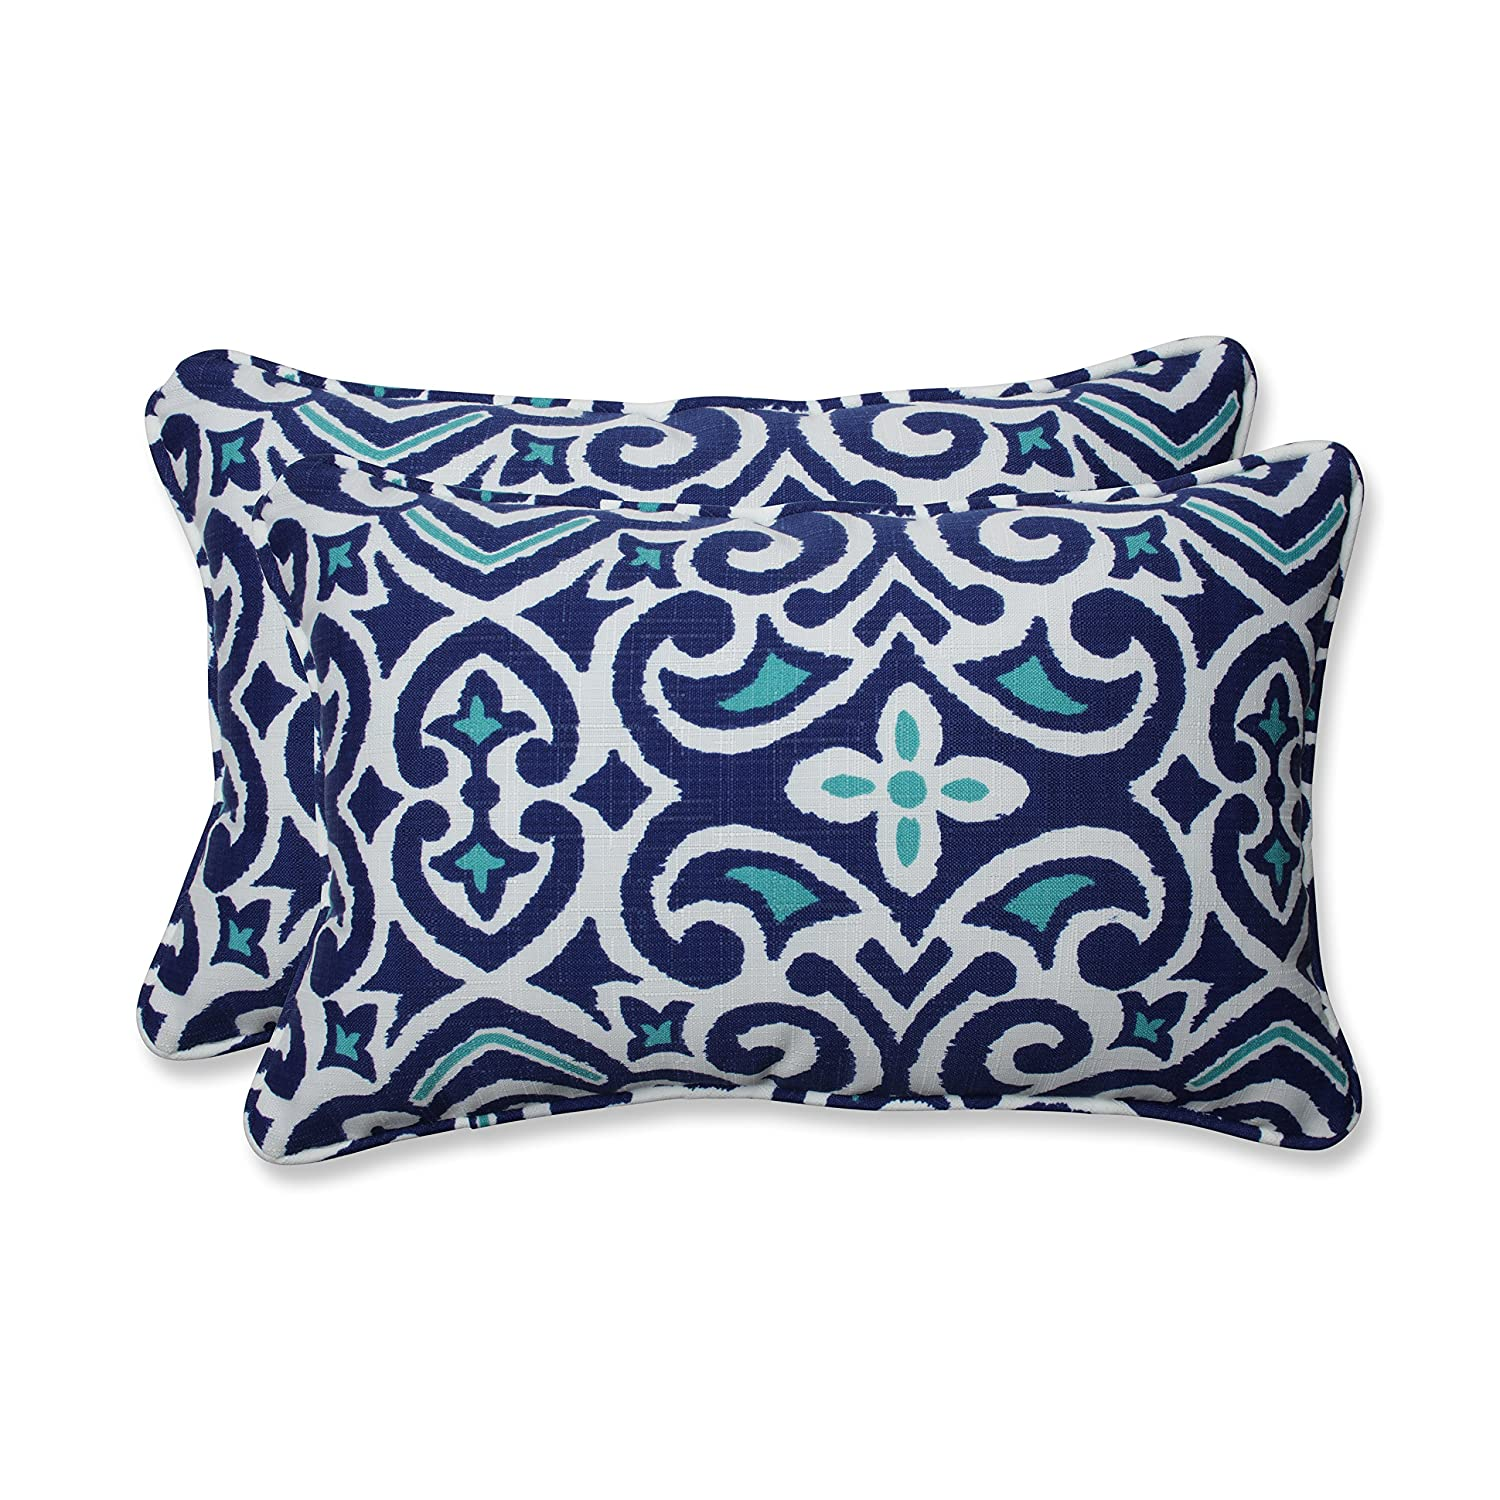 Pillow Perfect Outdoor Indoor New Damask Marine Rectangular Throw Pil, 2 Piece